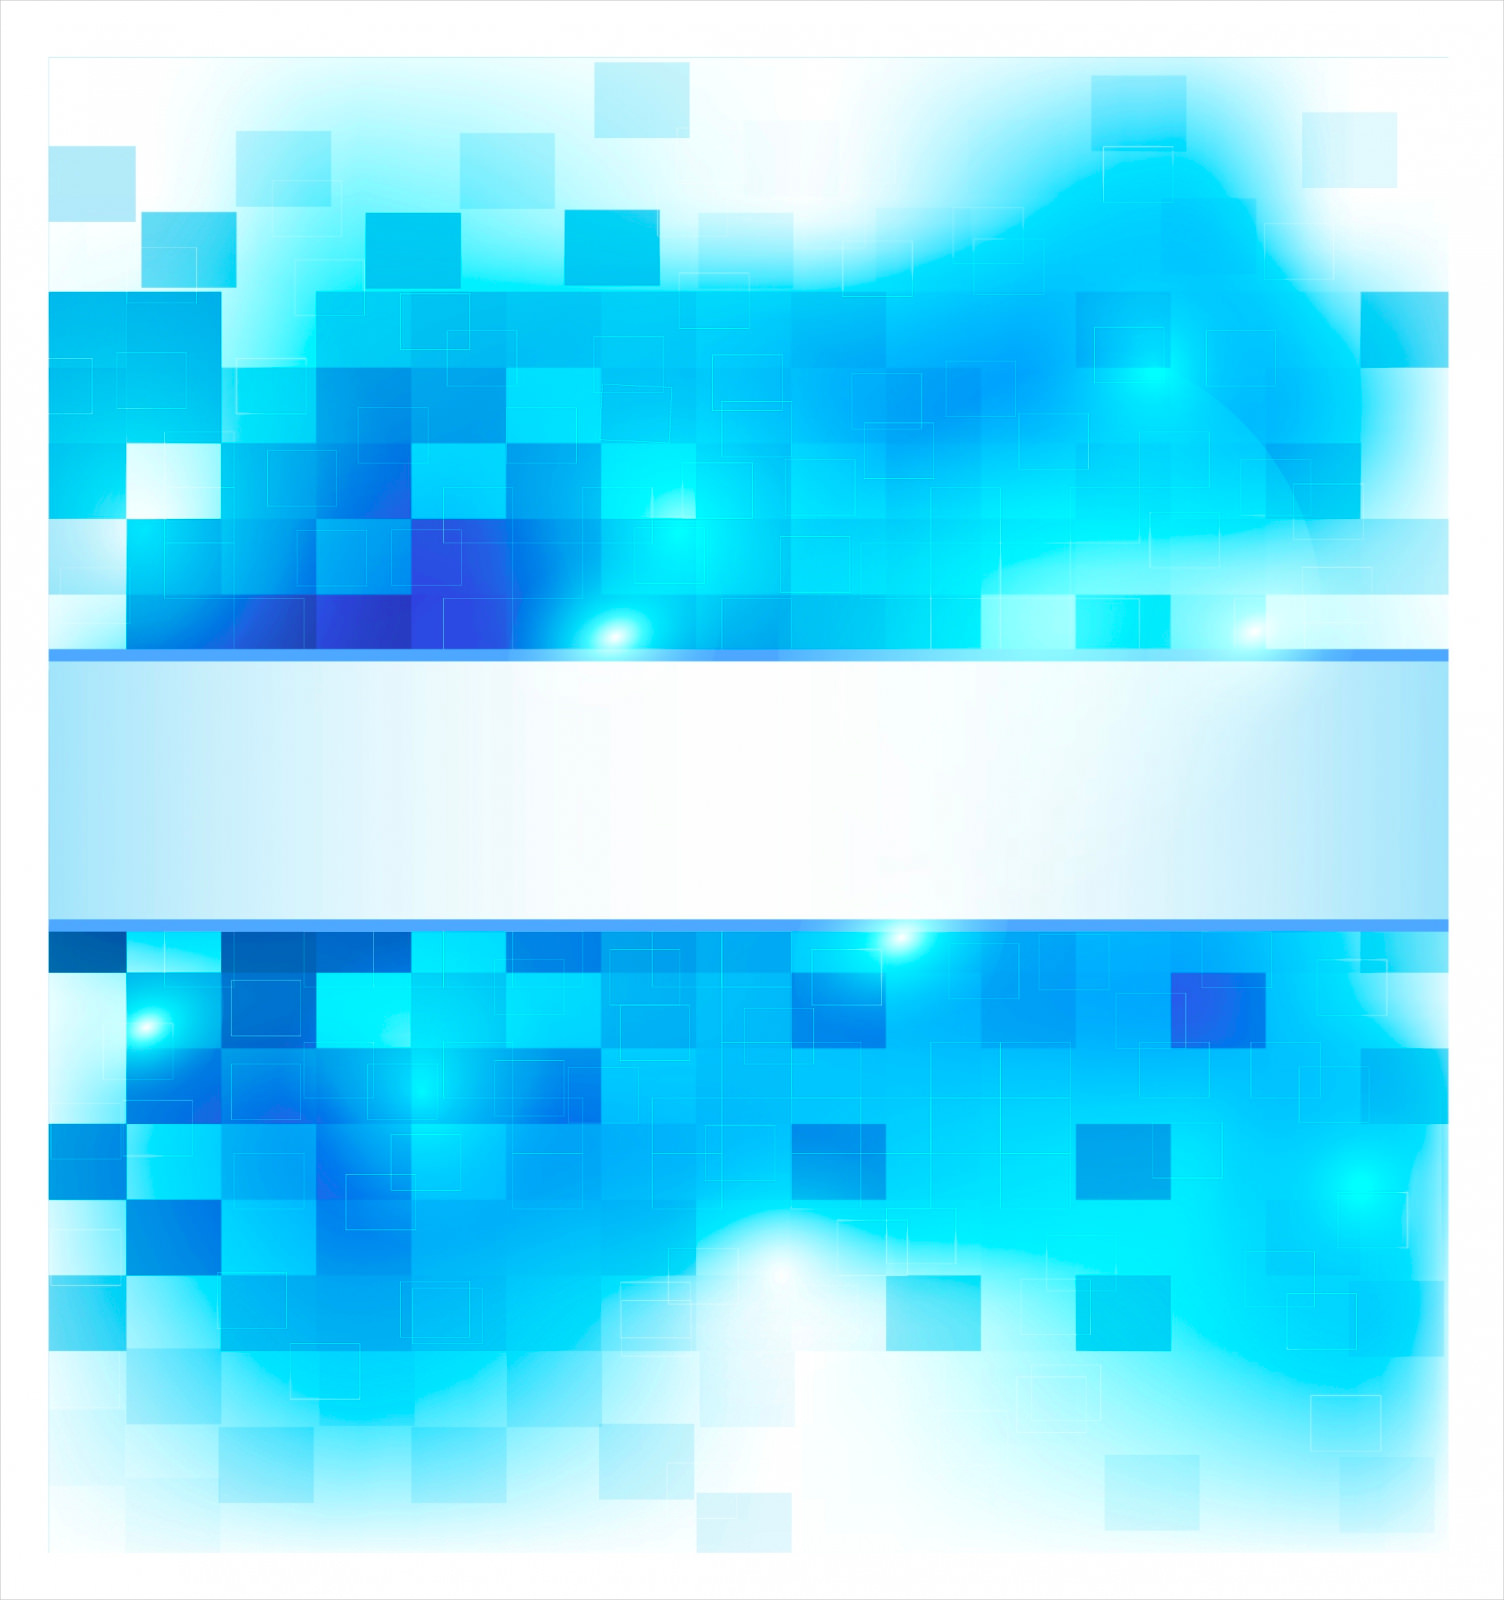 Abstract Blue & White Squares Background